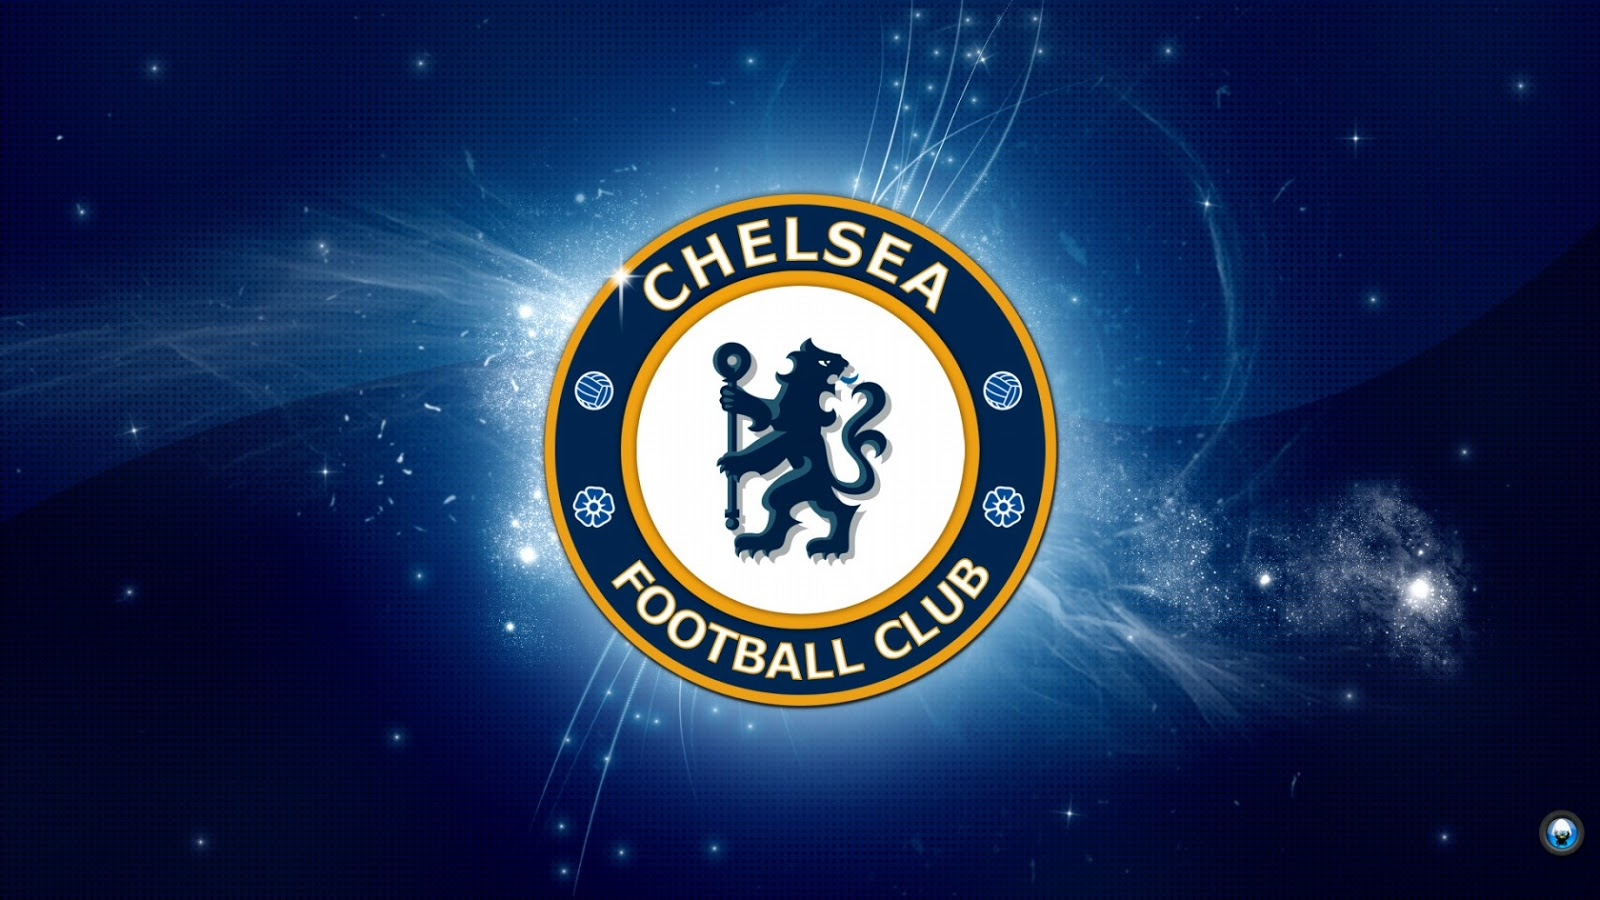 All Wallpapers Chelsea Fc Logo Wallpapers 2013